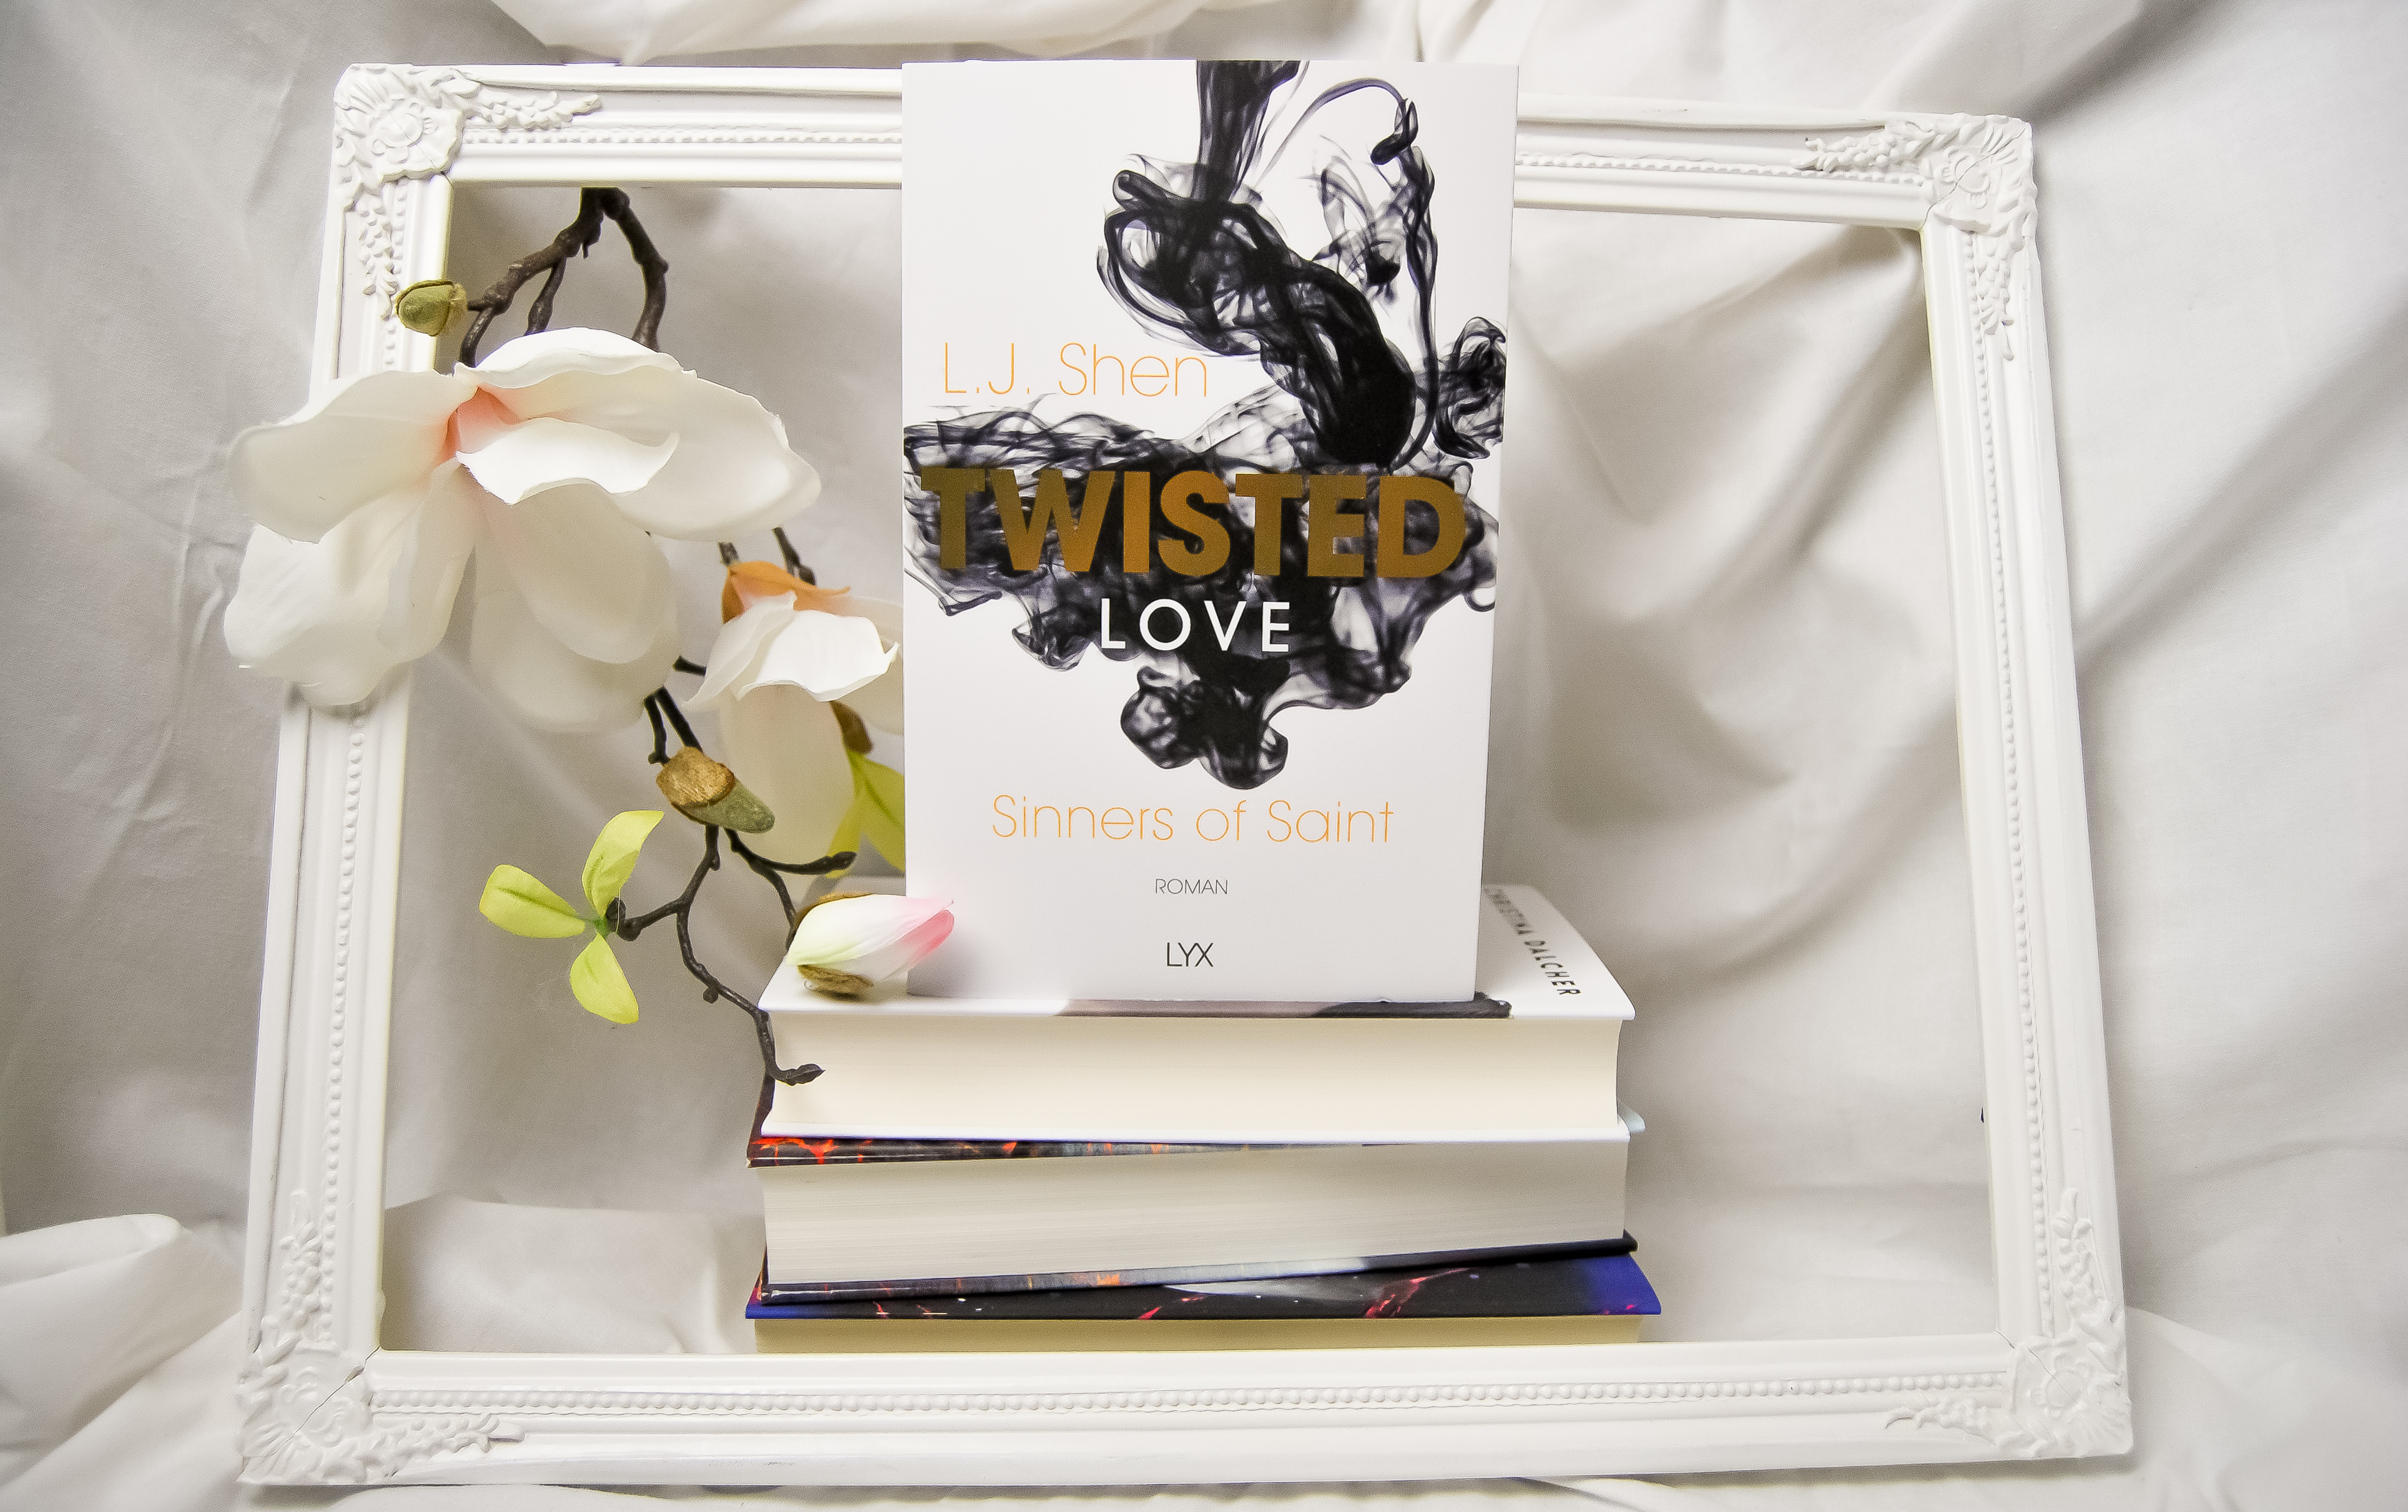 New in Sinner of Saints Twisted Love L. J. Shen